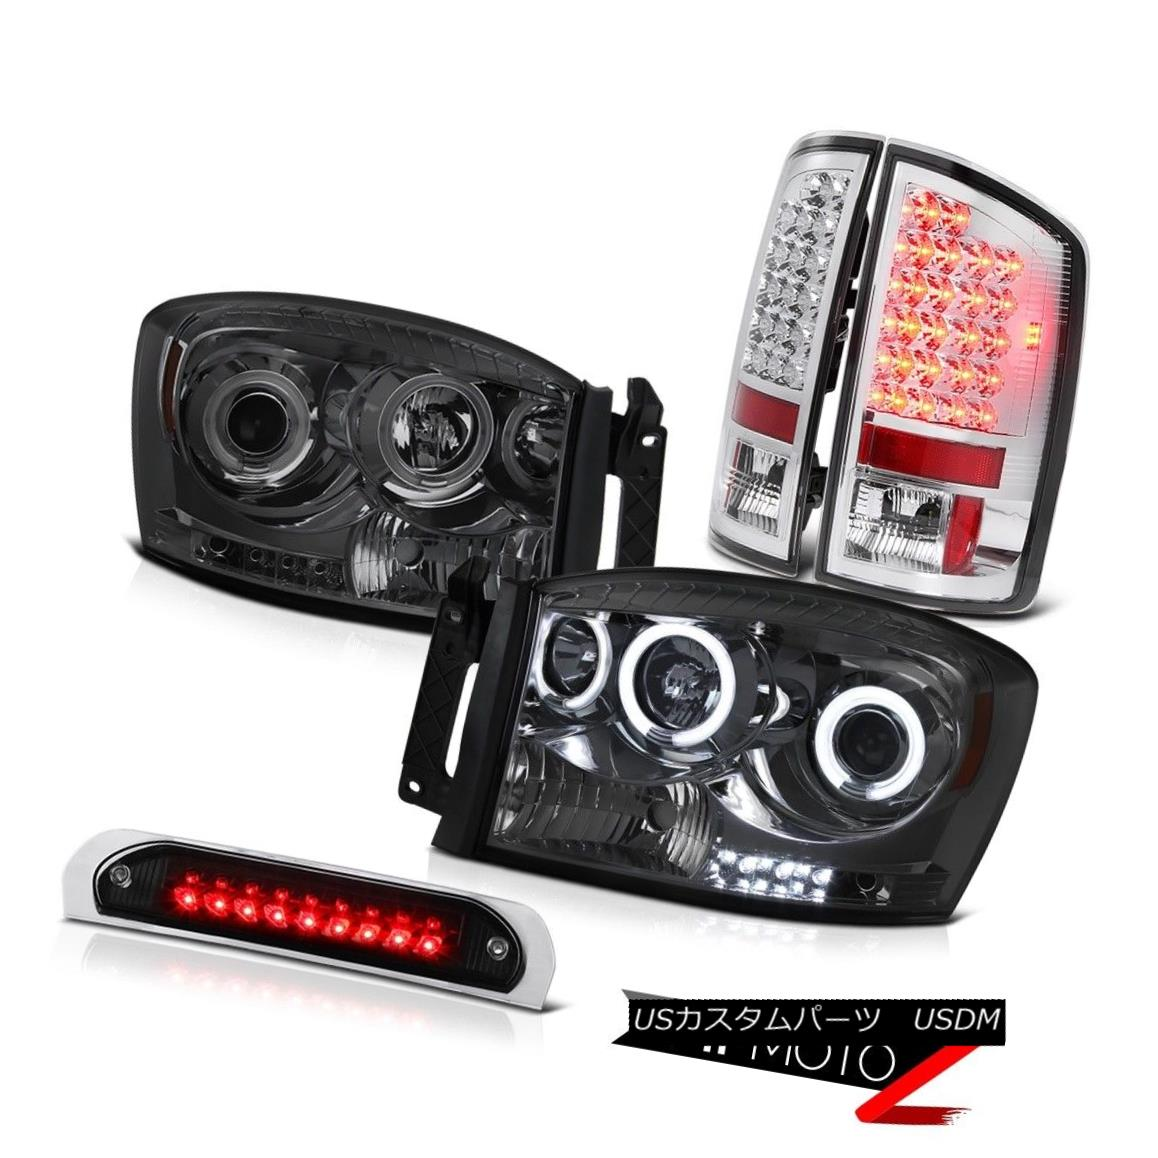 テールライト Smoke CCFL Halo Headlights Chrome LED Tail Lamps Black 3rd Brake 2006 Ram SLT Smoke CCFL HaloヘッドライトクロームLEDテールランプブラック3rdブレーキ2006 Ram SLT